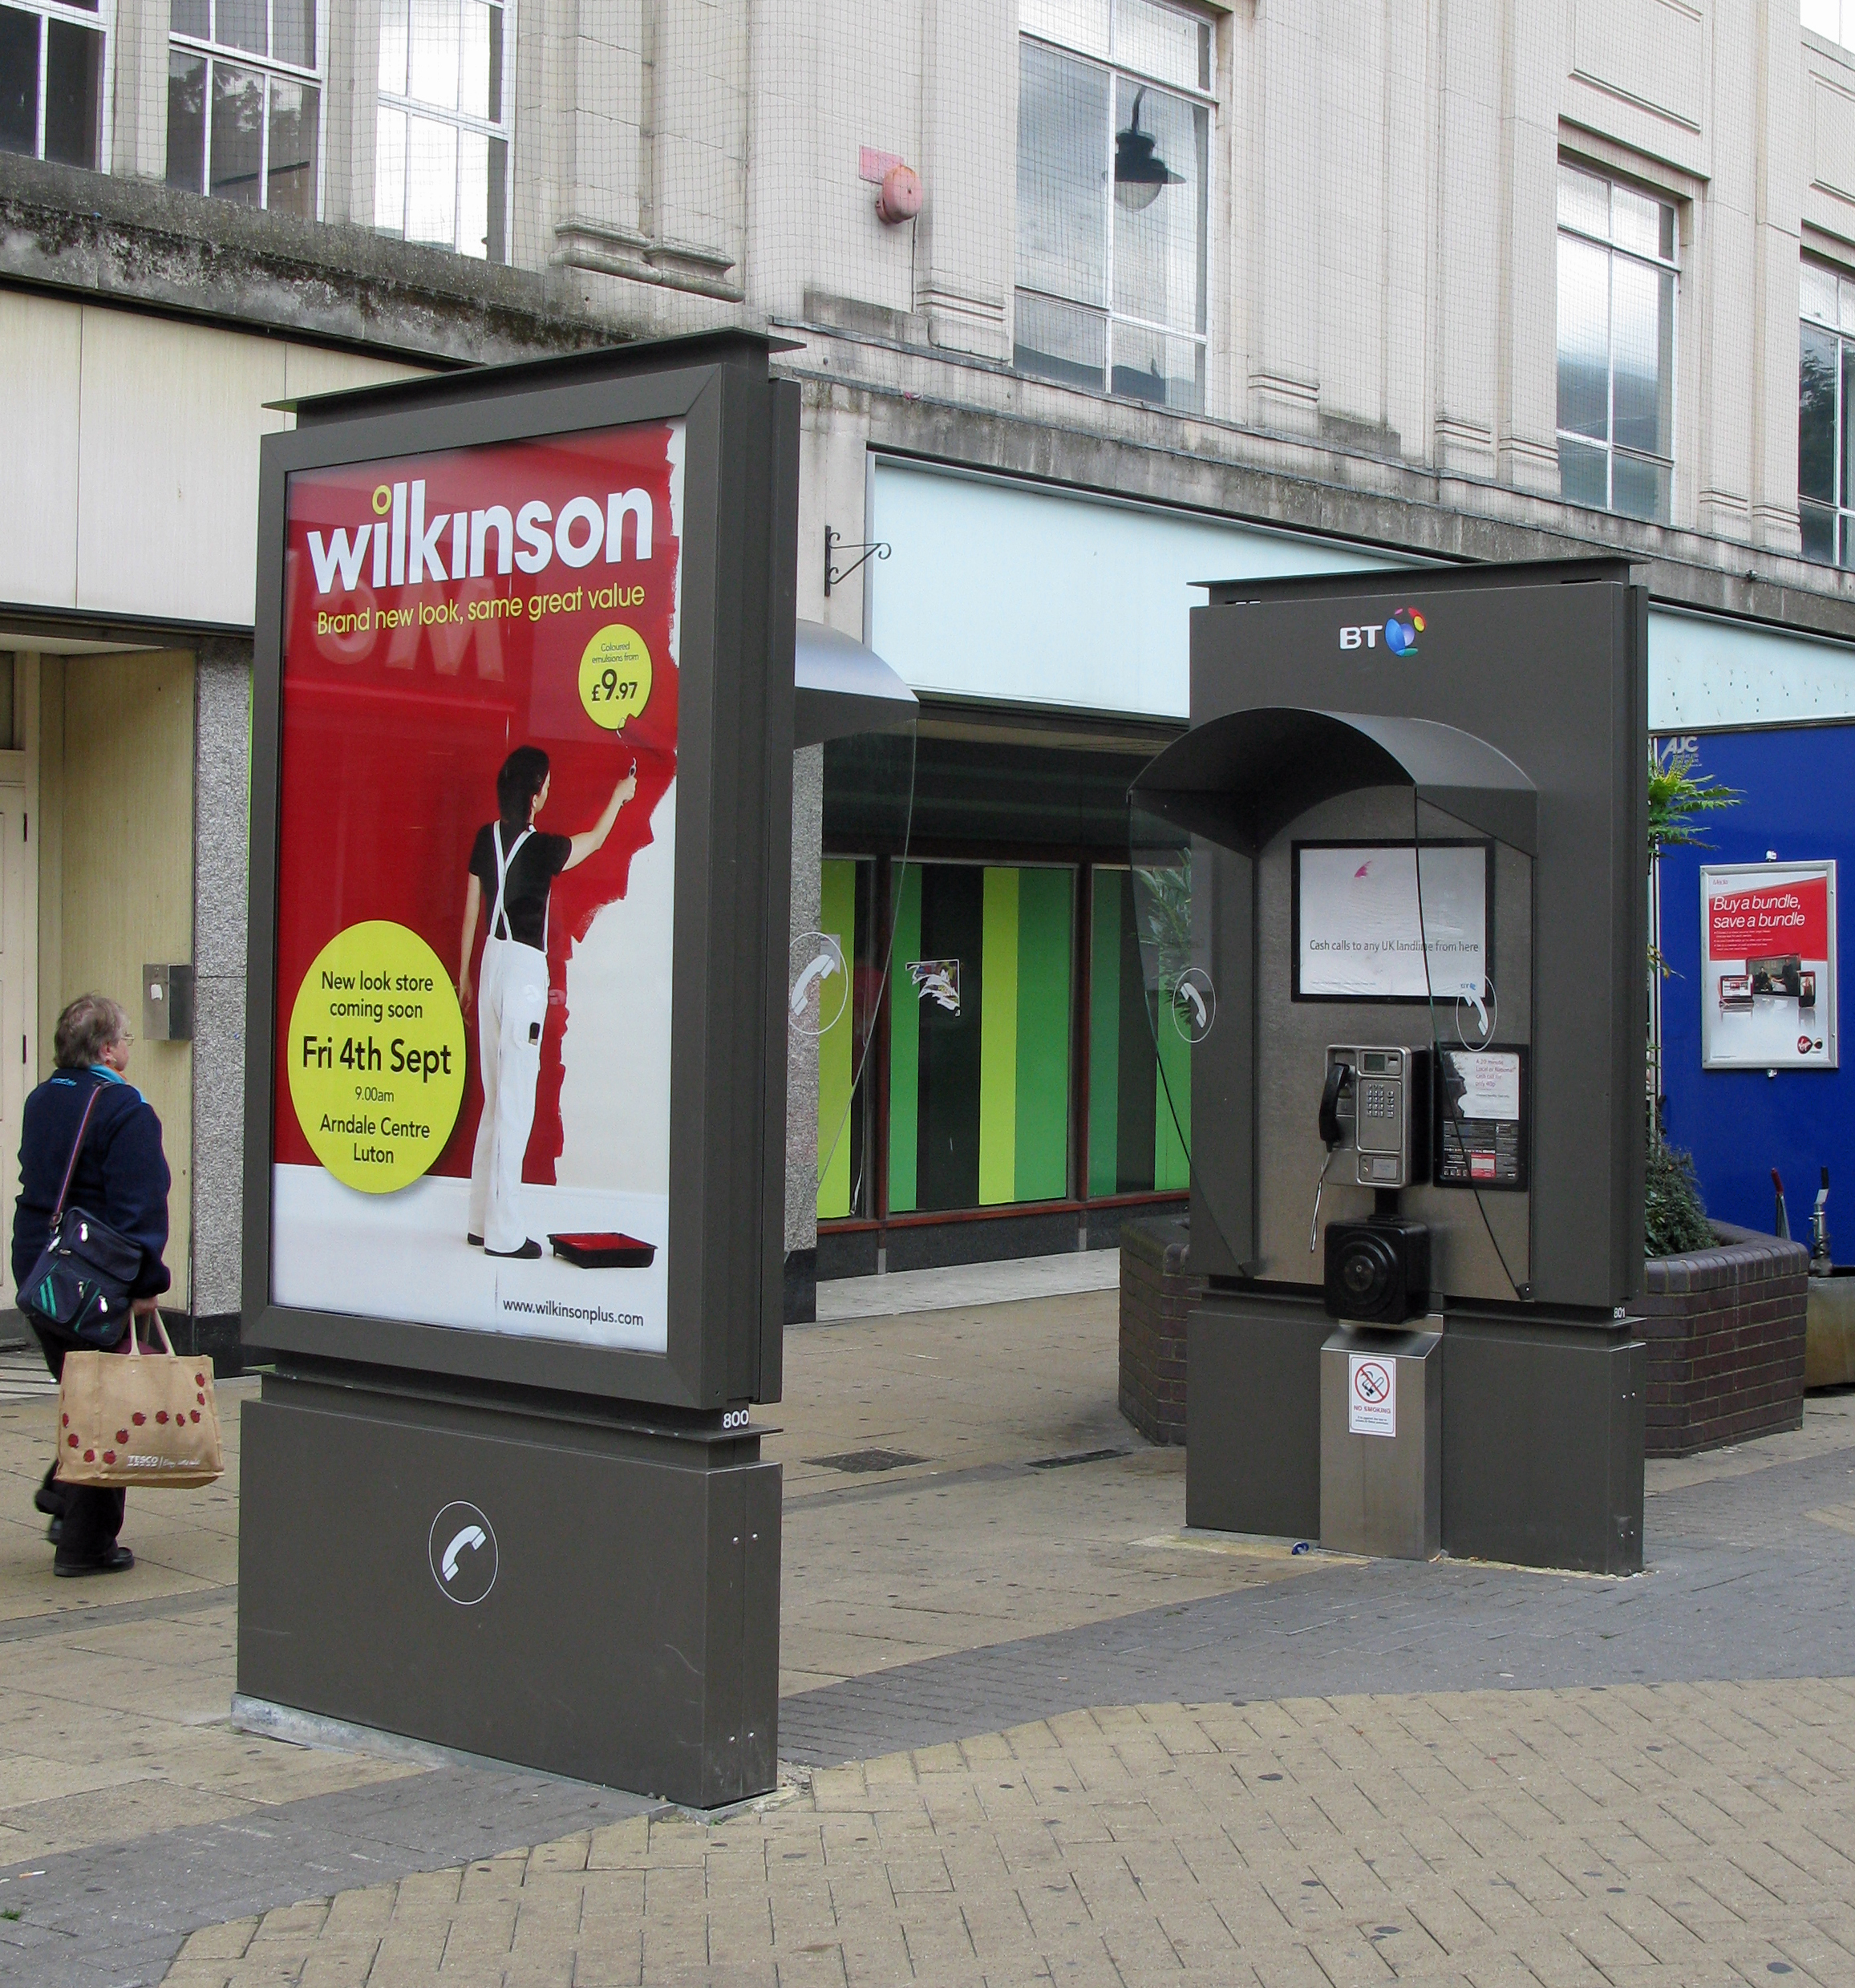 In 2009 BT entered a partnership with JC Decaux for a new series of 'kiosks'. These have a standard ST6 on one side and scrolling advertising on the other. Ealing, London